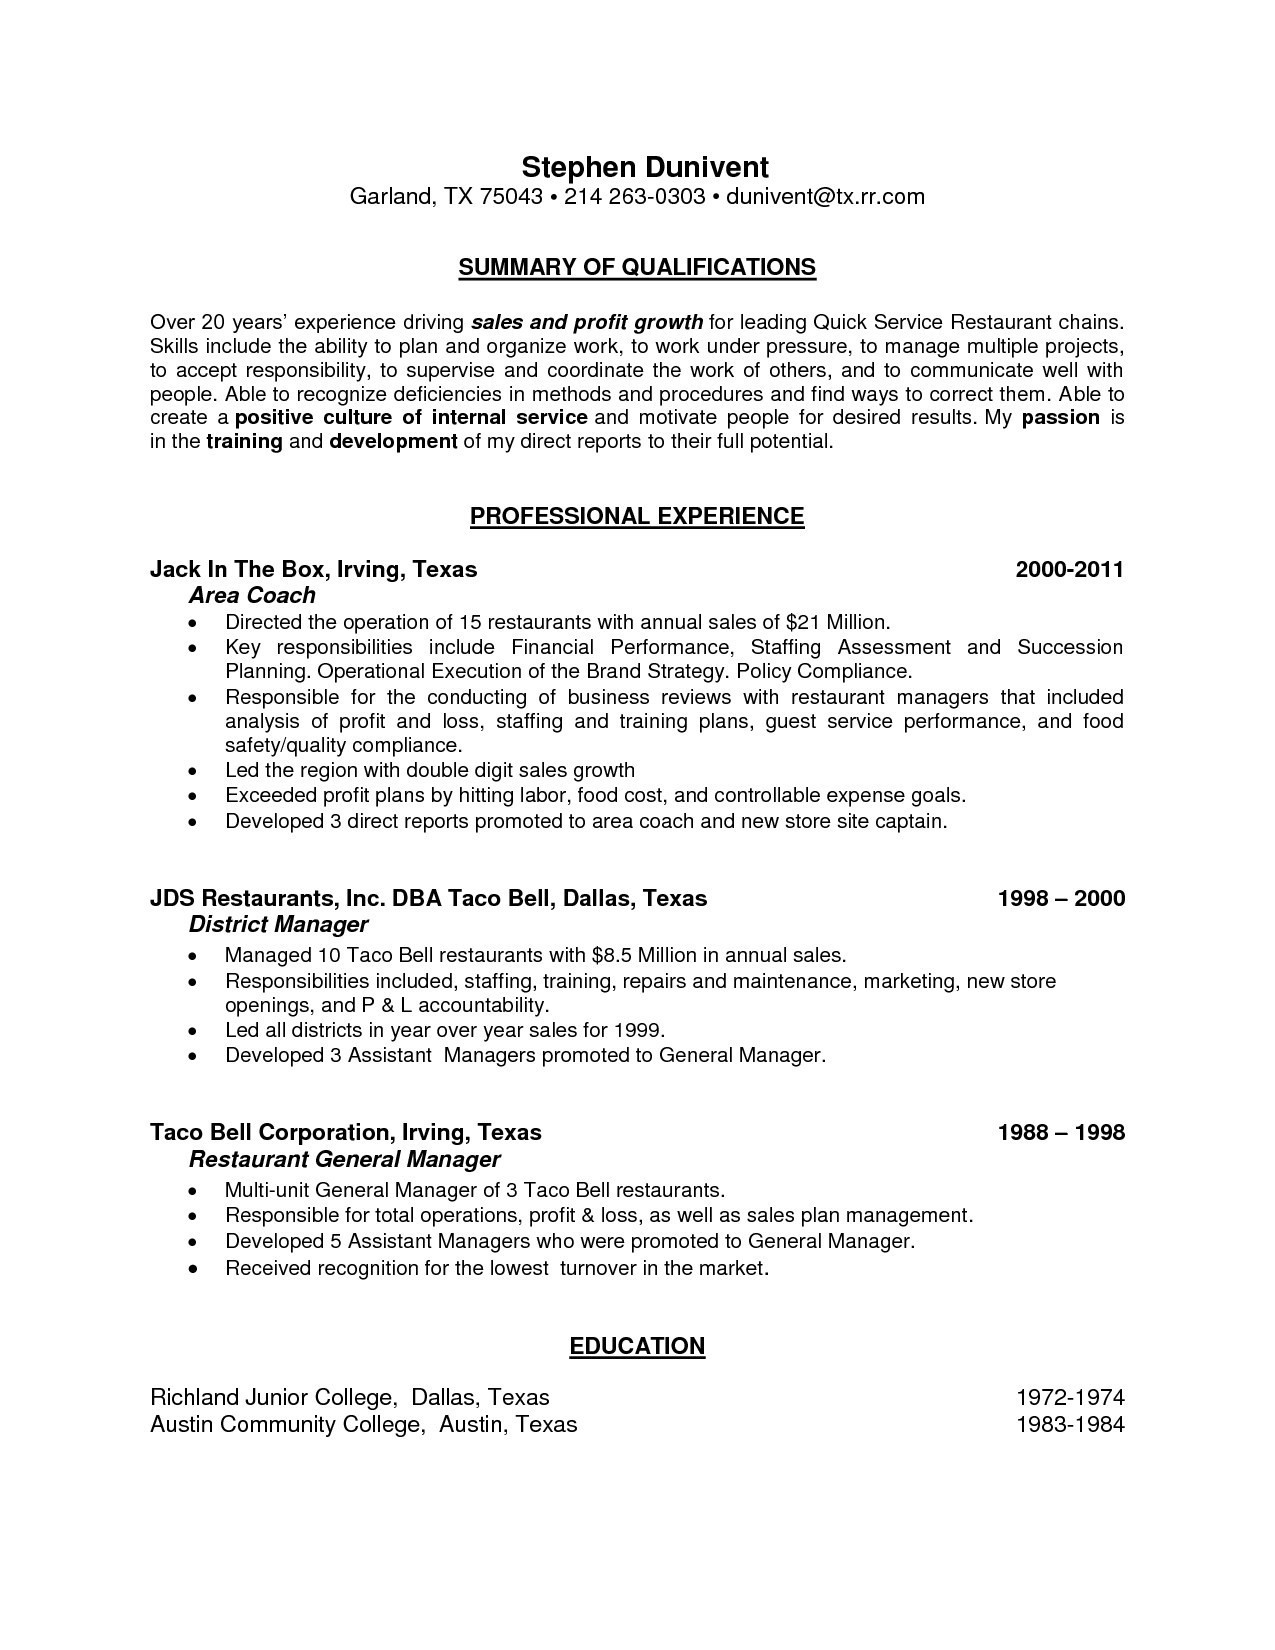 resumes samples skills Collection-Skills Summary Resume Sample Fresh Resume Samples Skills Fresh Resume Examples 0d Skills Examples For 19-t